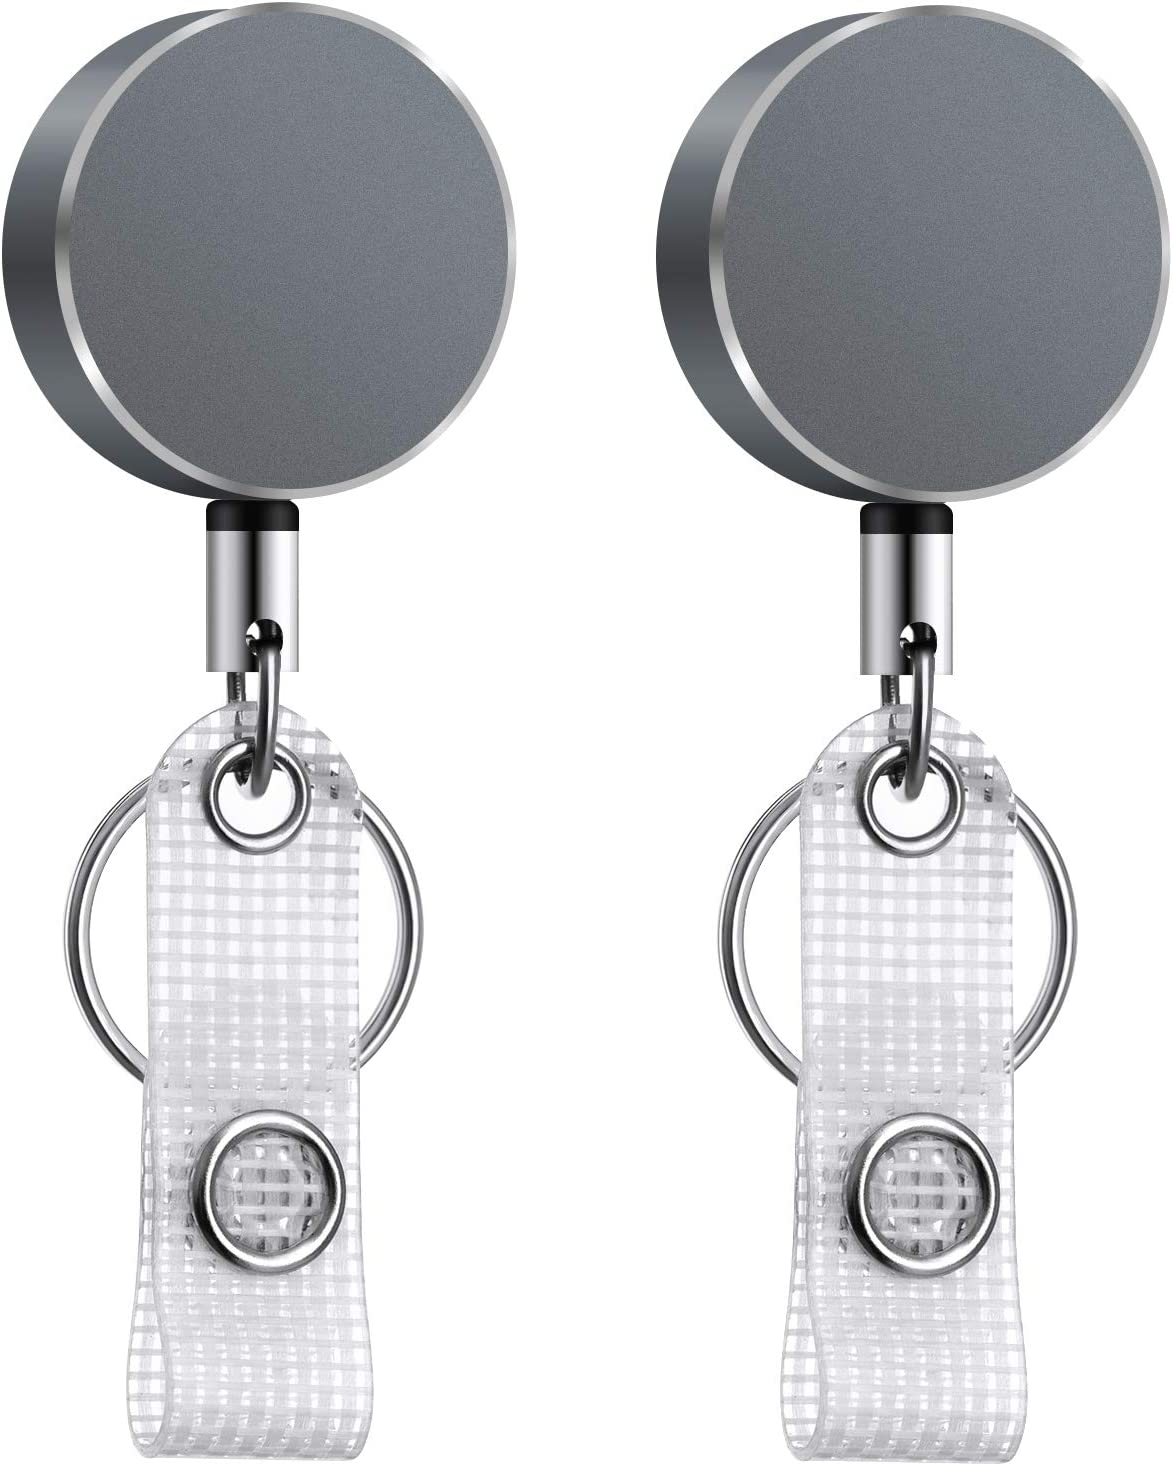 "2 Pack Retractable Badge Holders with Belt Clip Key Ring, All Metal Casing ID Badge Holder with 23"" Adjustable High Strength Wire Cord, Badge Reels with Reel Clip for Office Staff, Nurses and Etc."